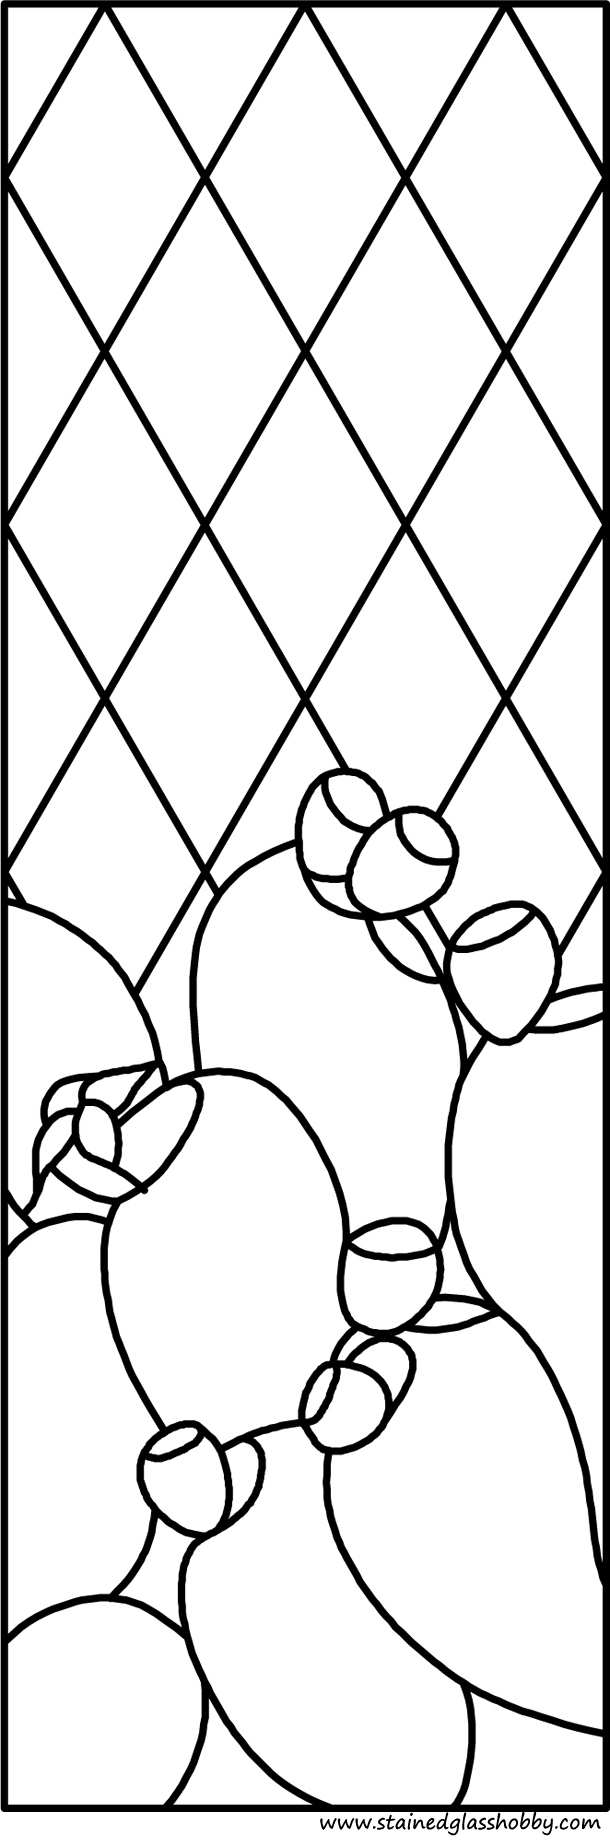 Bajtra panel stained glass pattern